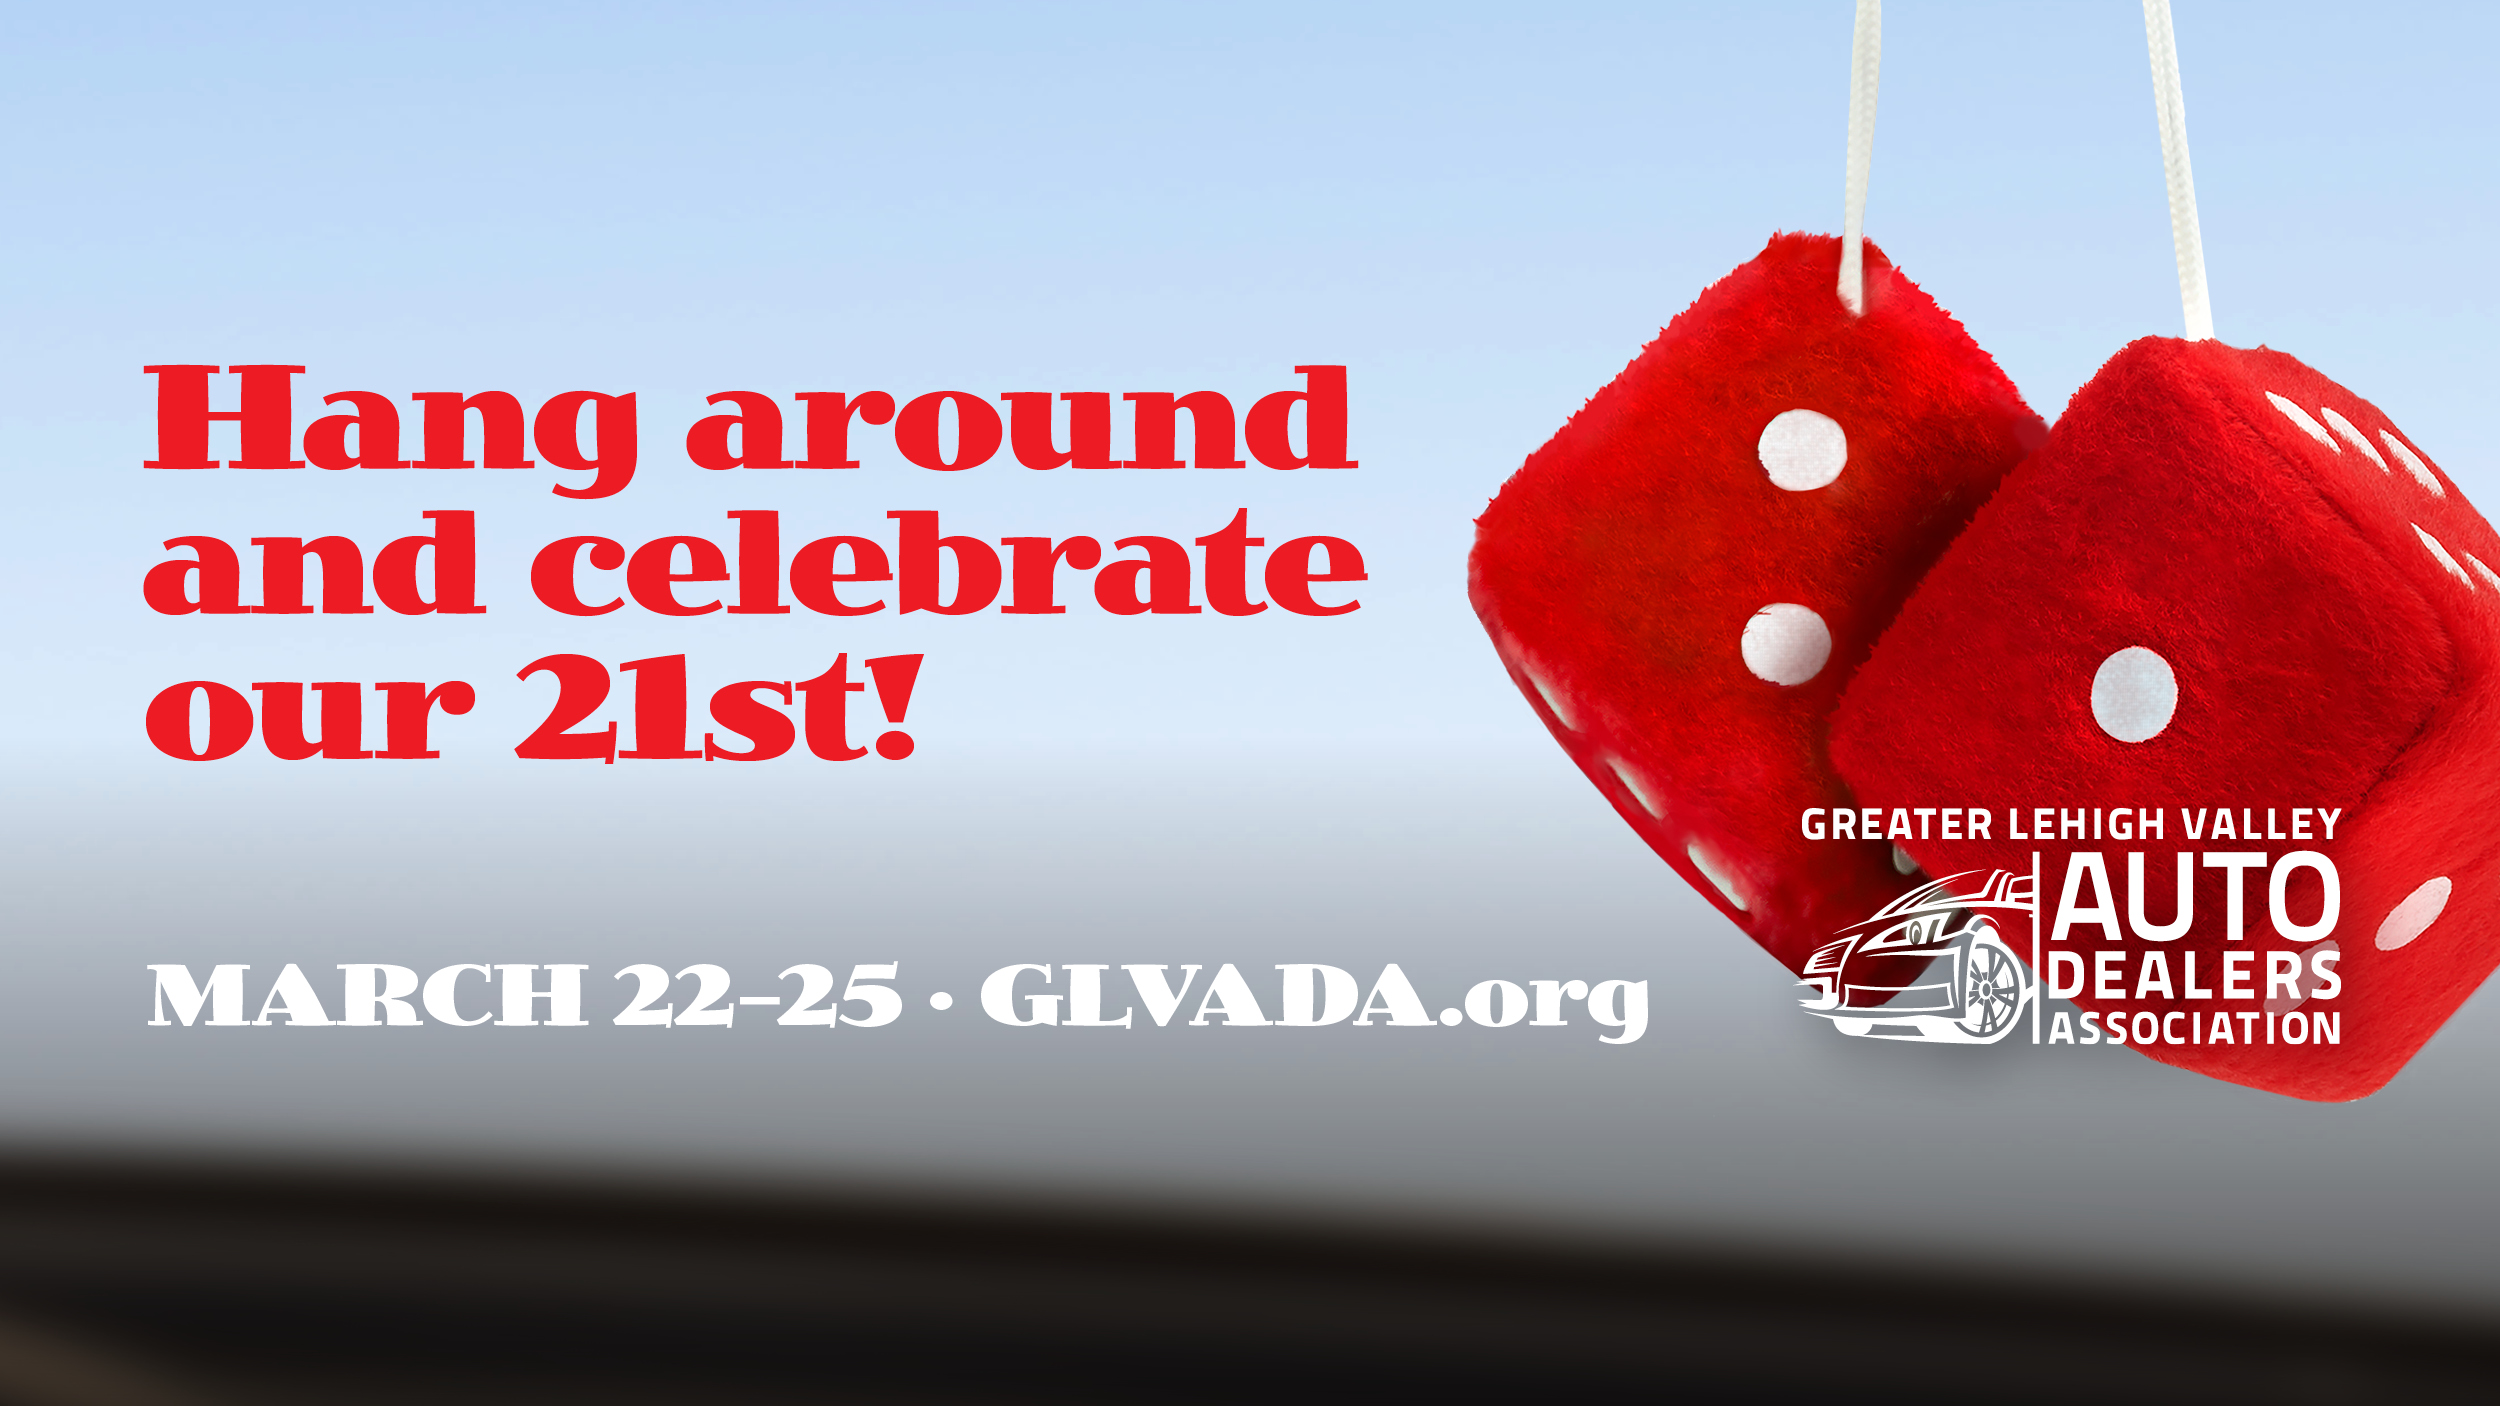 Greater Lehigh Valley Auto Dealers Association